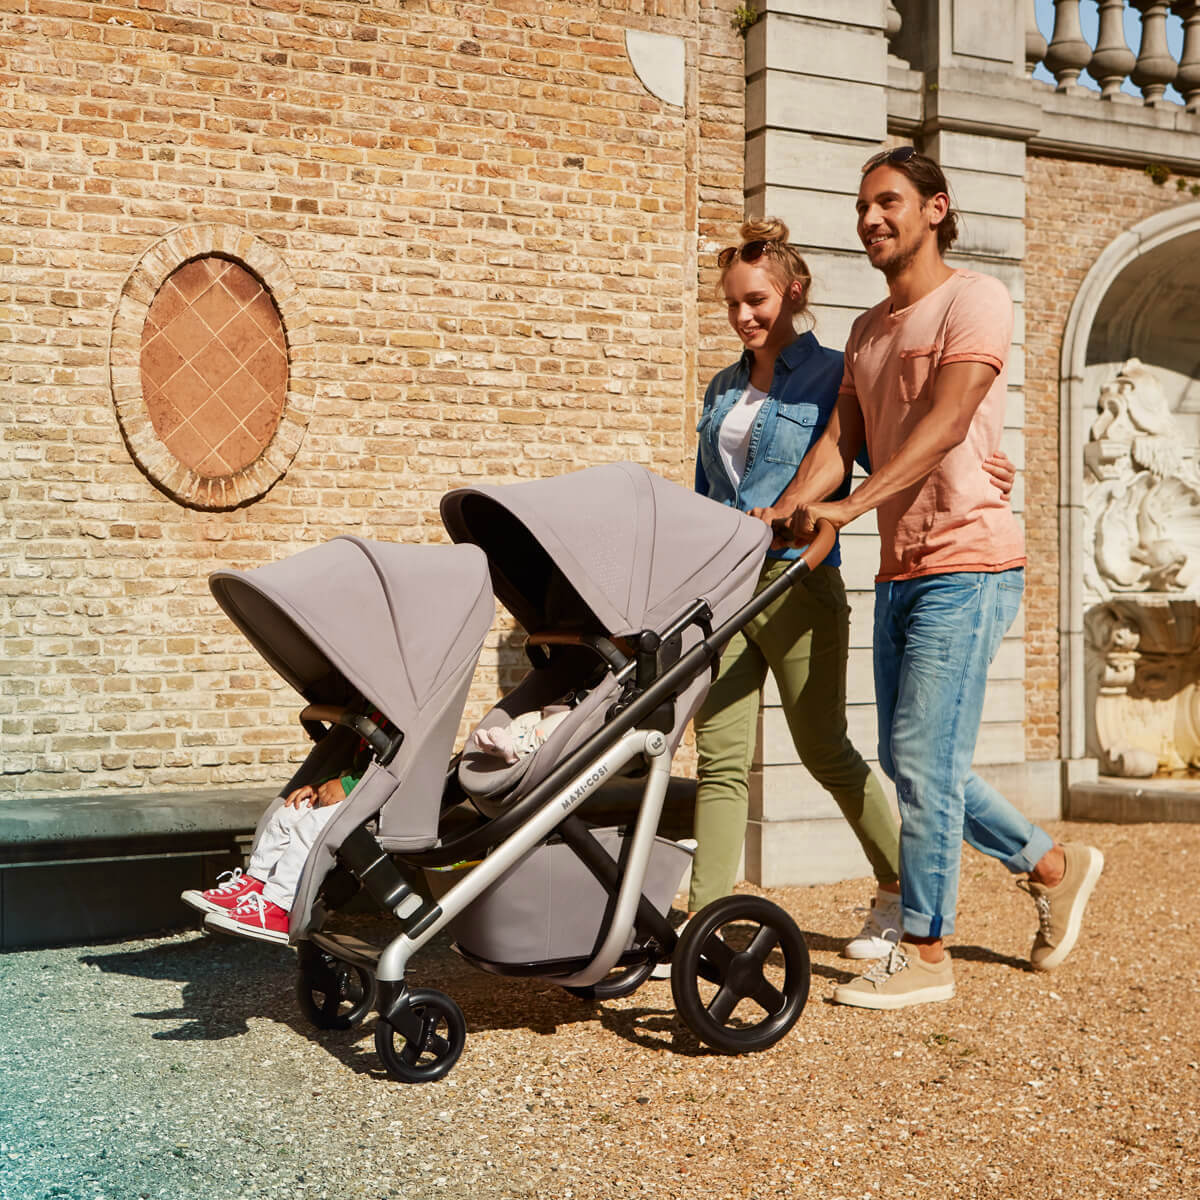 The Maxi-Cosi Lila stroller second seat (suitable from 6 months) includes a set of adaptors, pedal and rain cover.